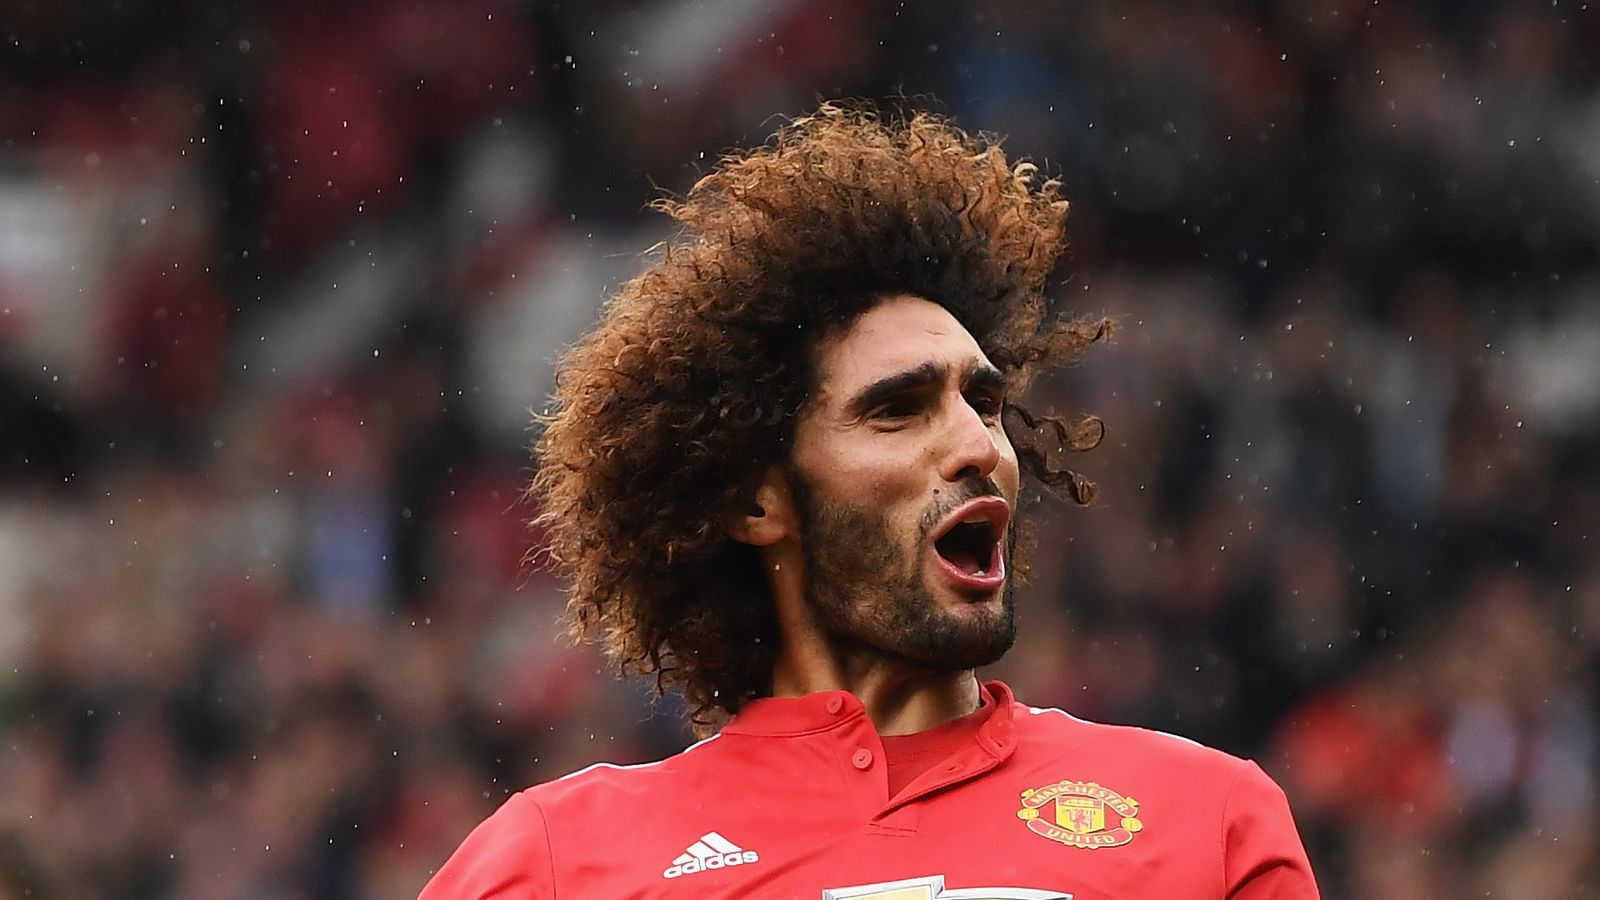 Marouane Fellaini's Future In Doubt Amid Manchester United